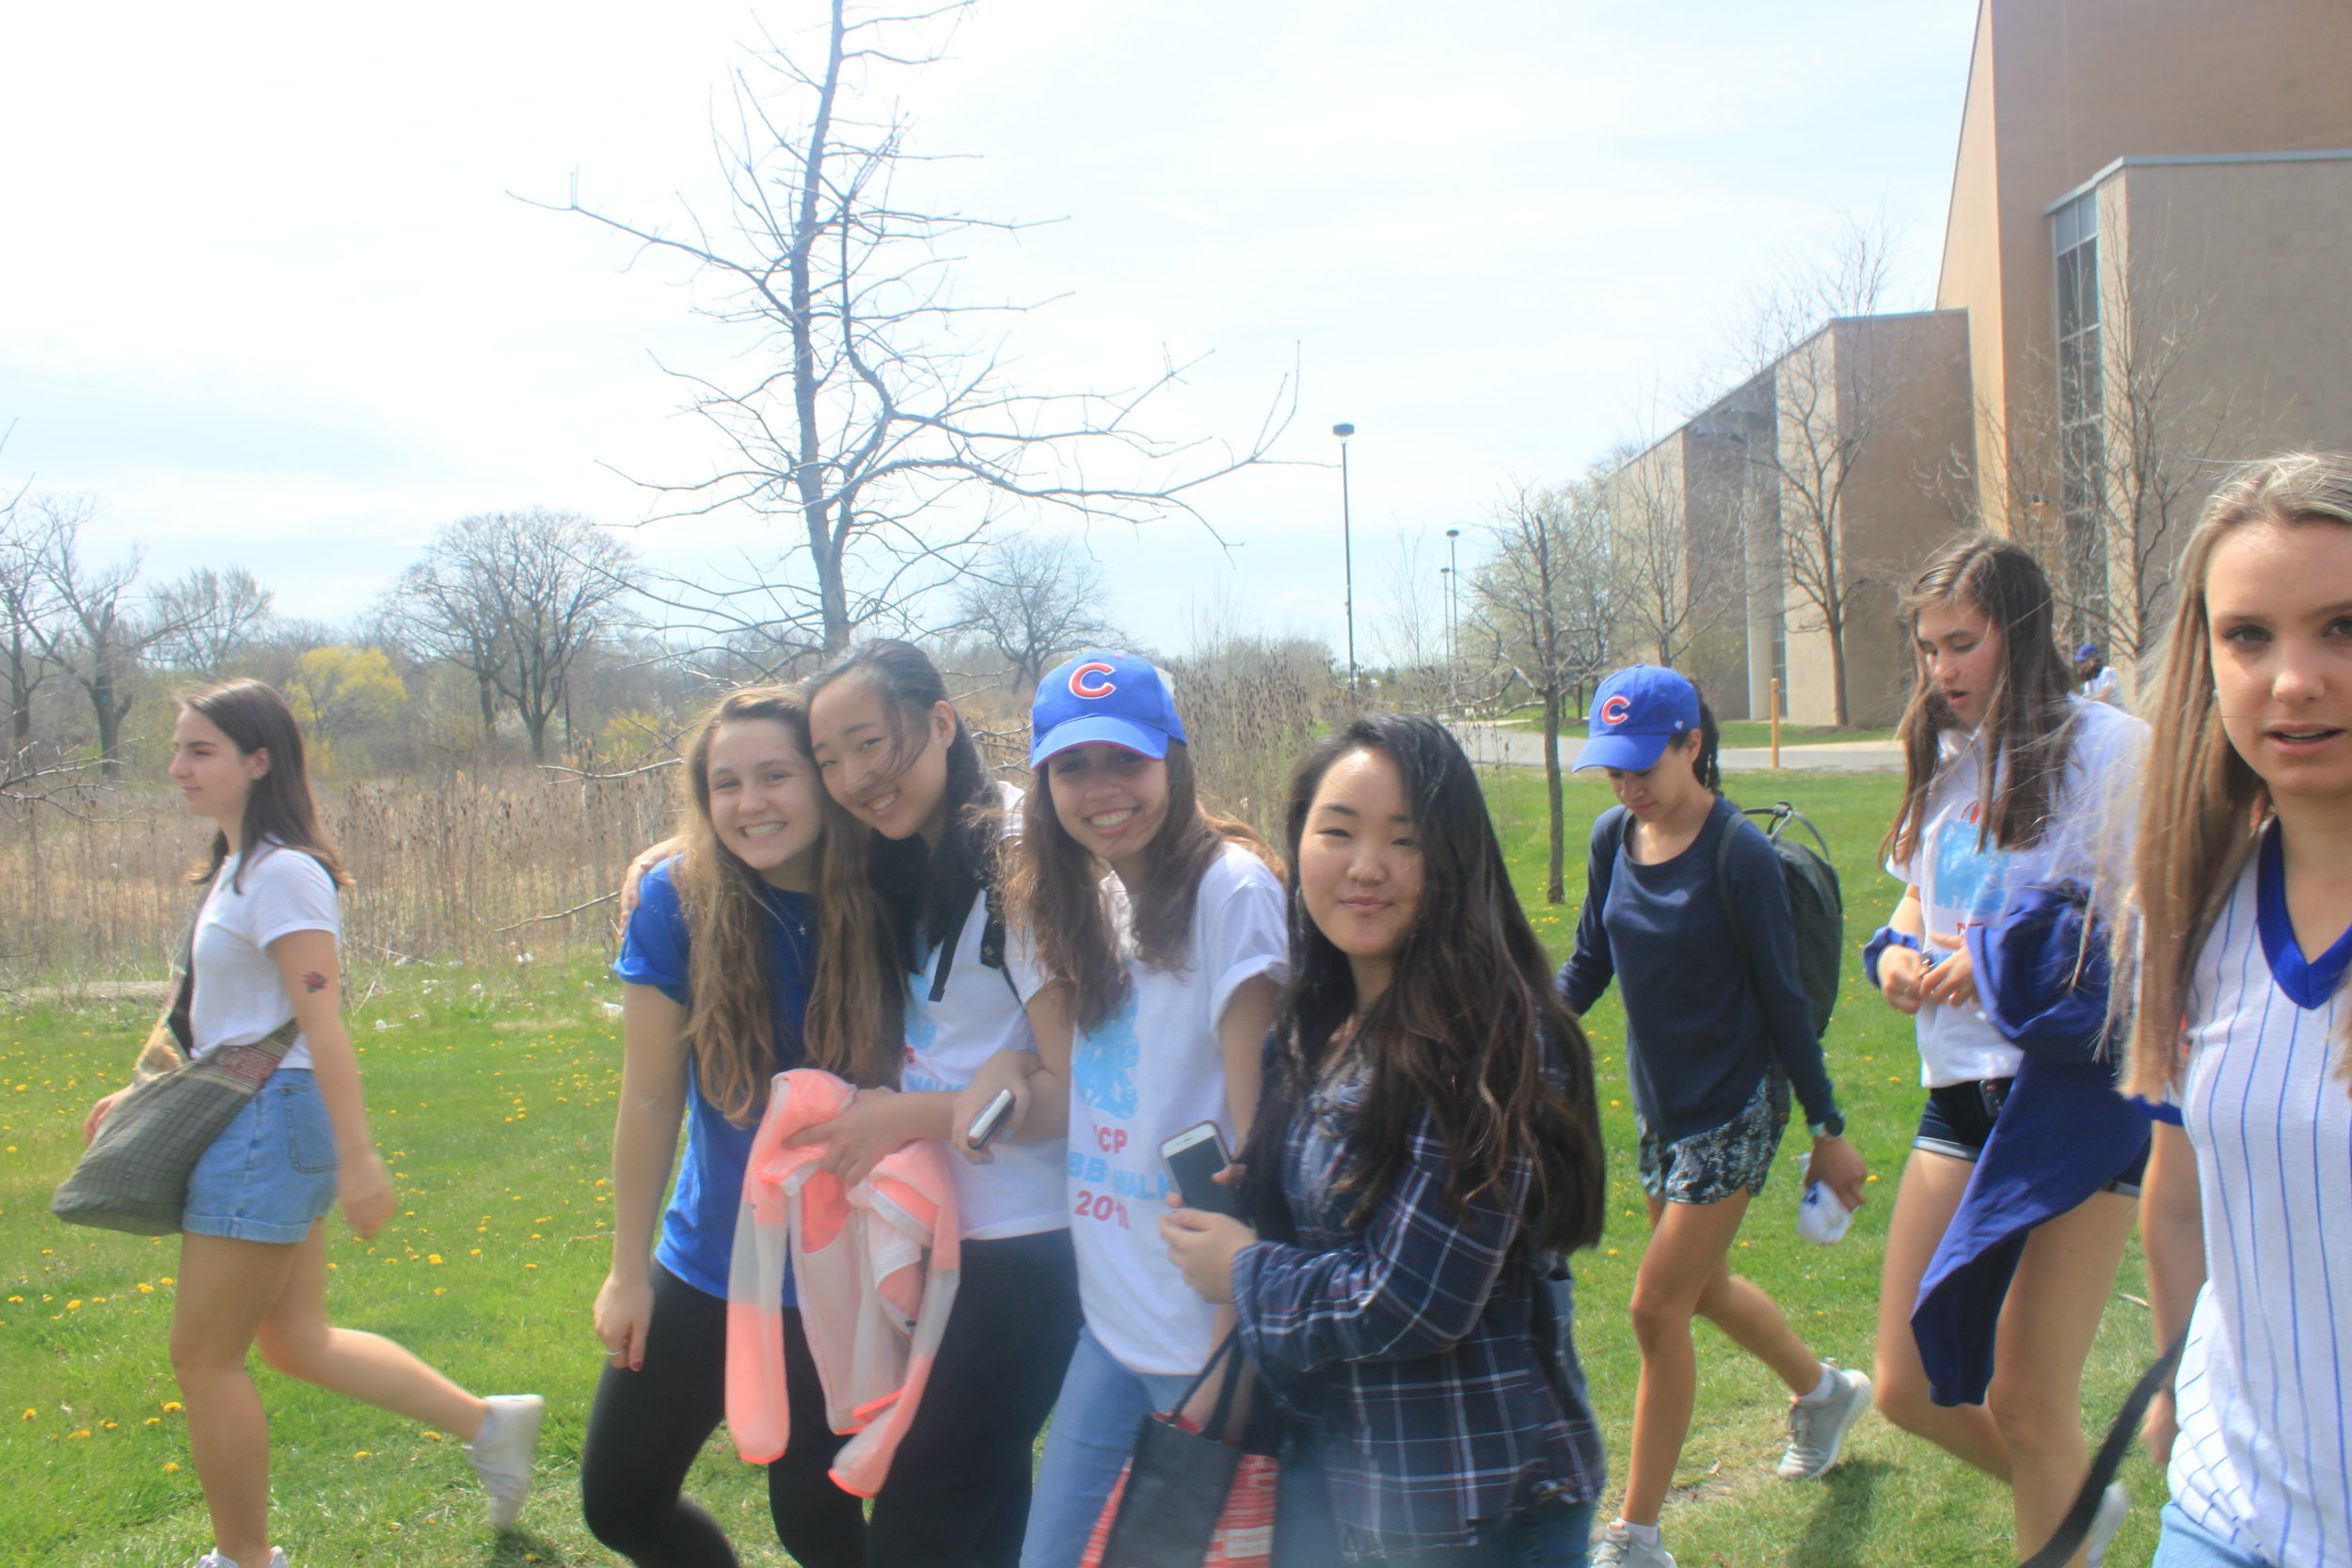 Northsiders smile as they leave school and and excited for the game.